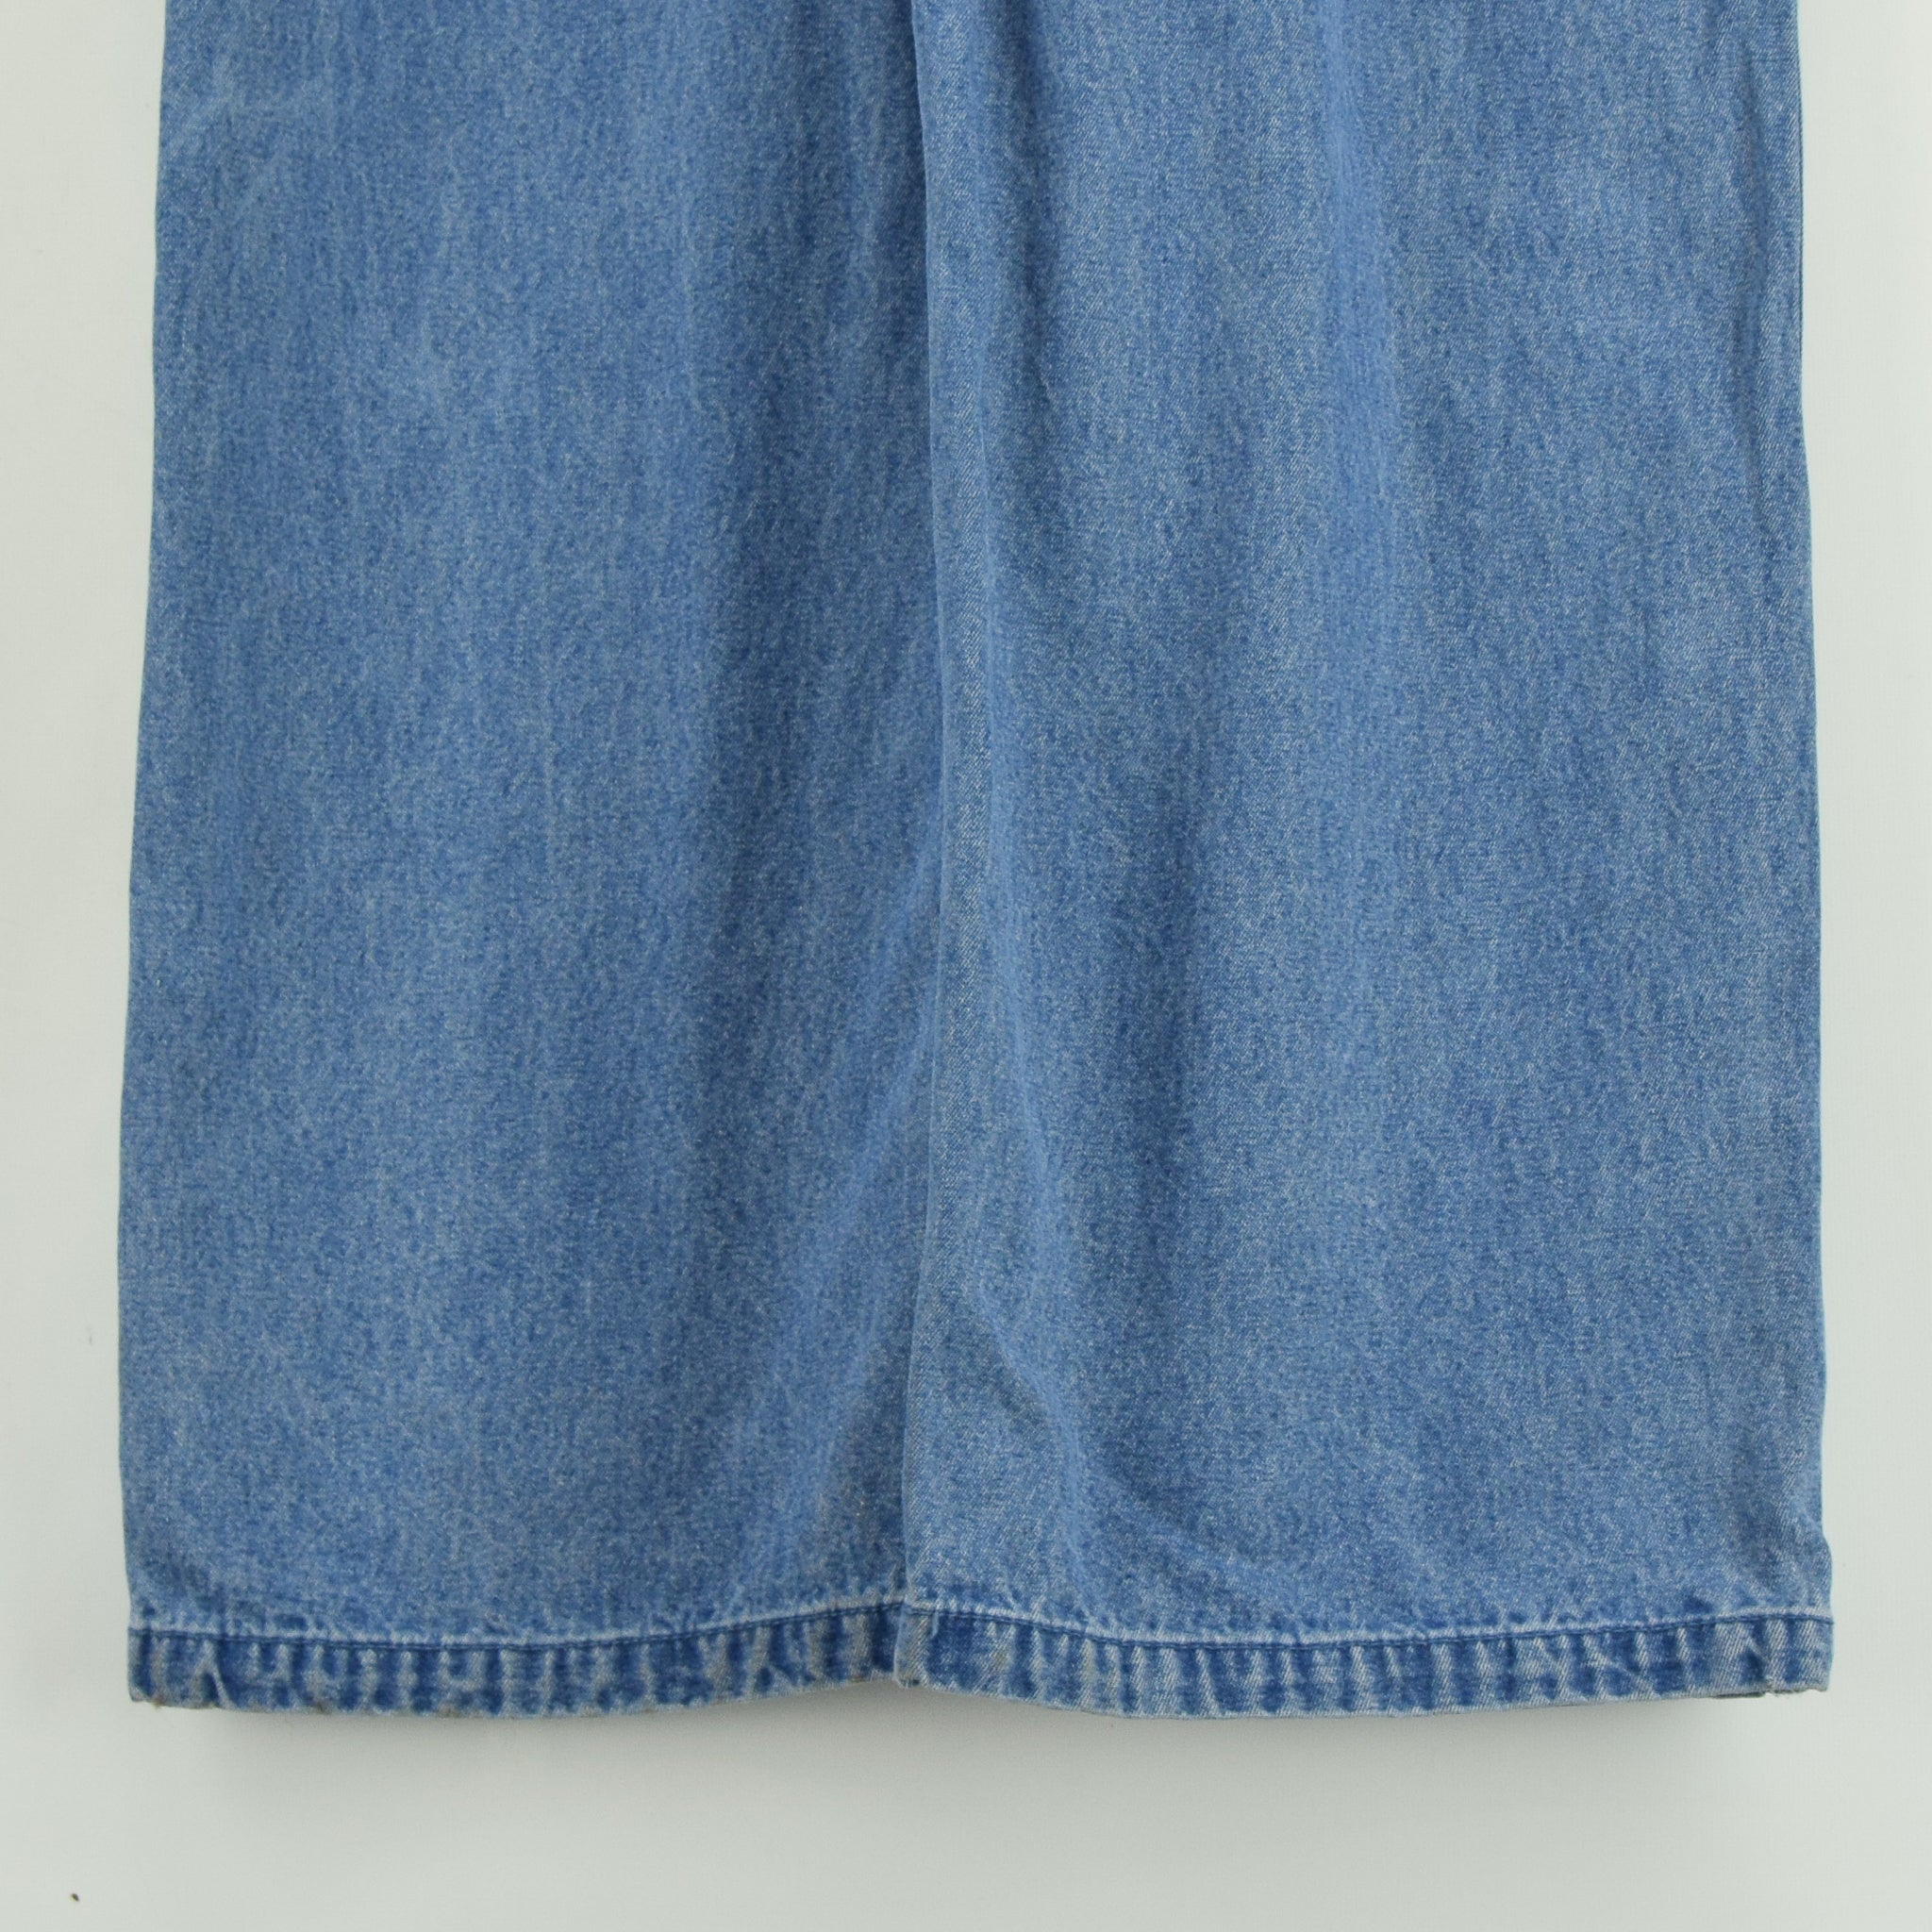 Vintage Big Smith Denim Work Dungarees Blue Bib Overalls Trousers L / XL back legs